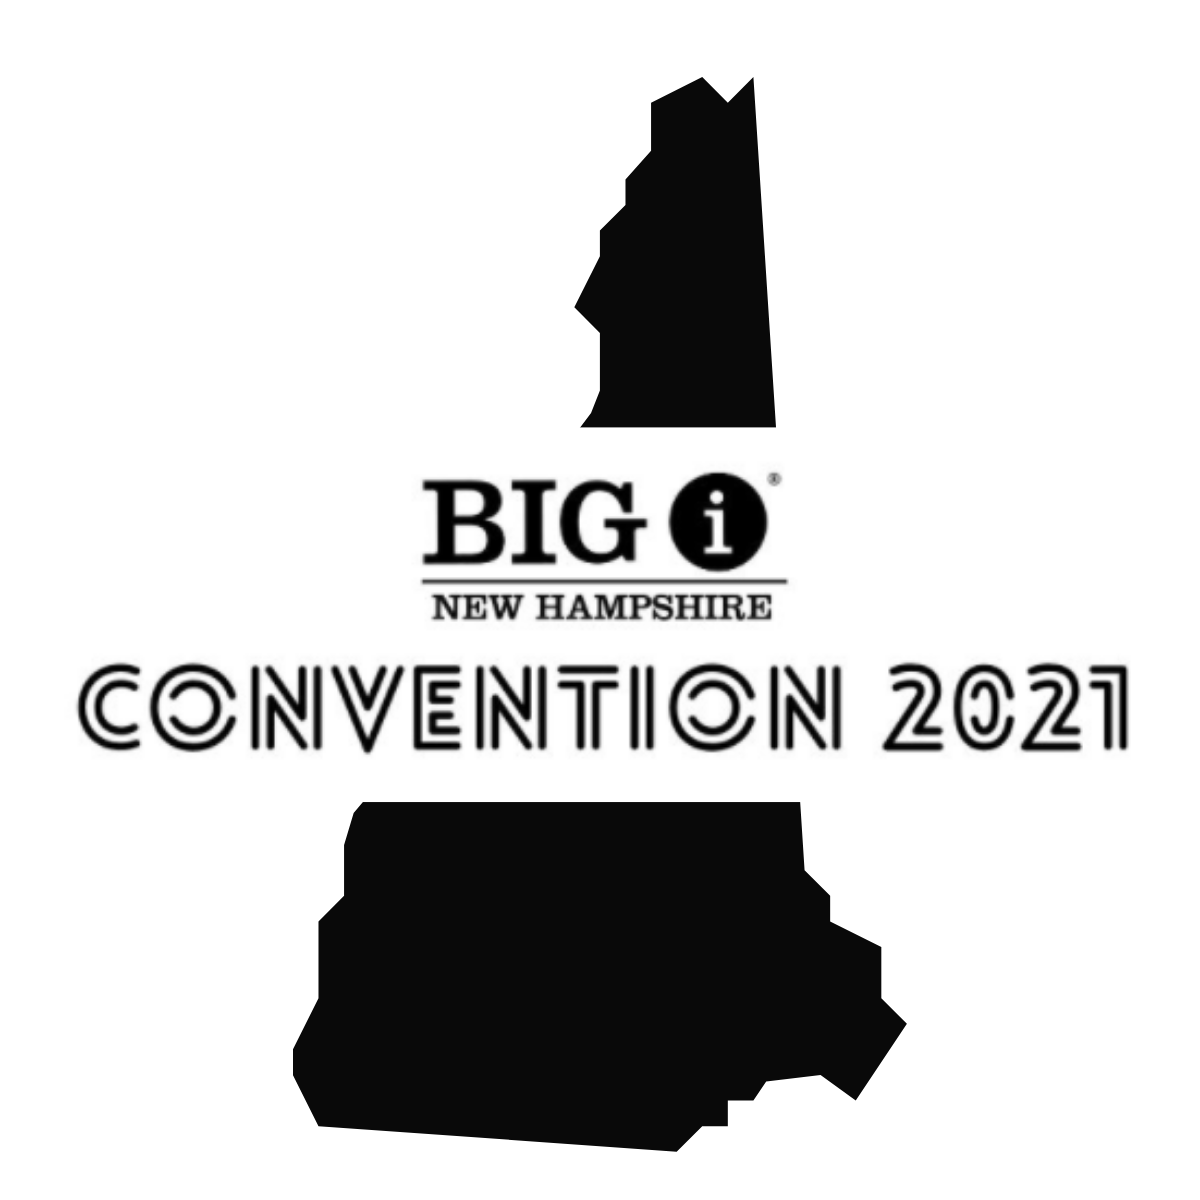 NEEE to Exhibit at New Hampshire BIG I Convention 2021